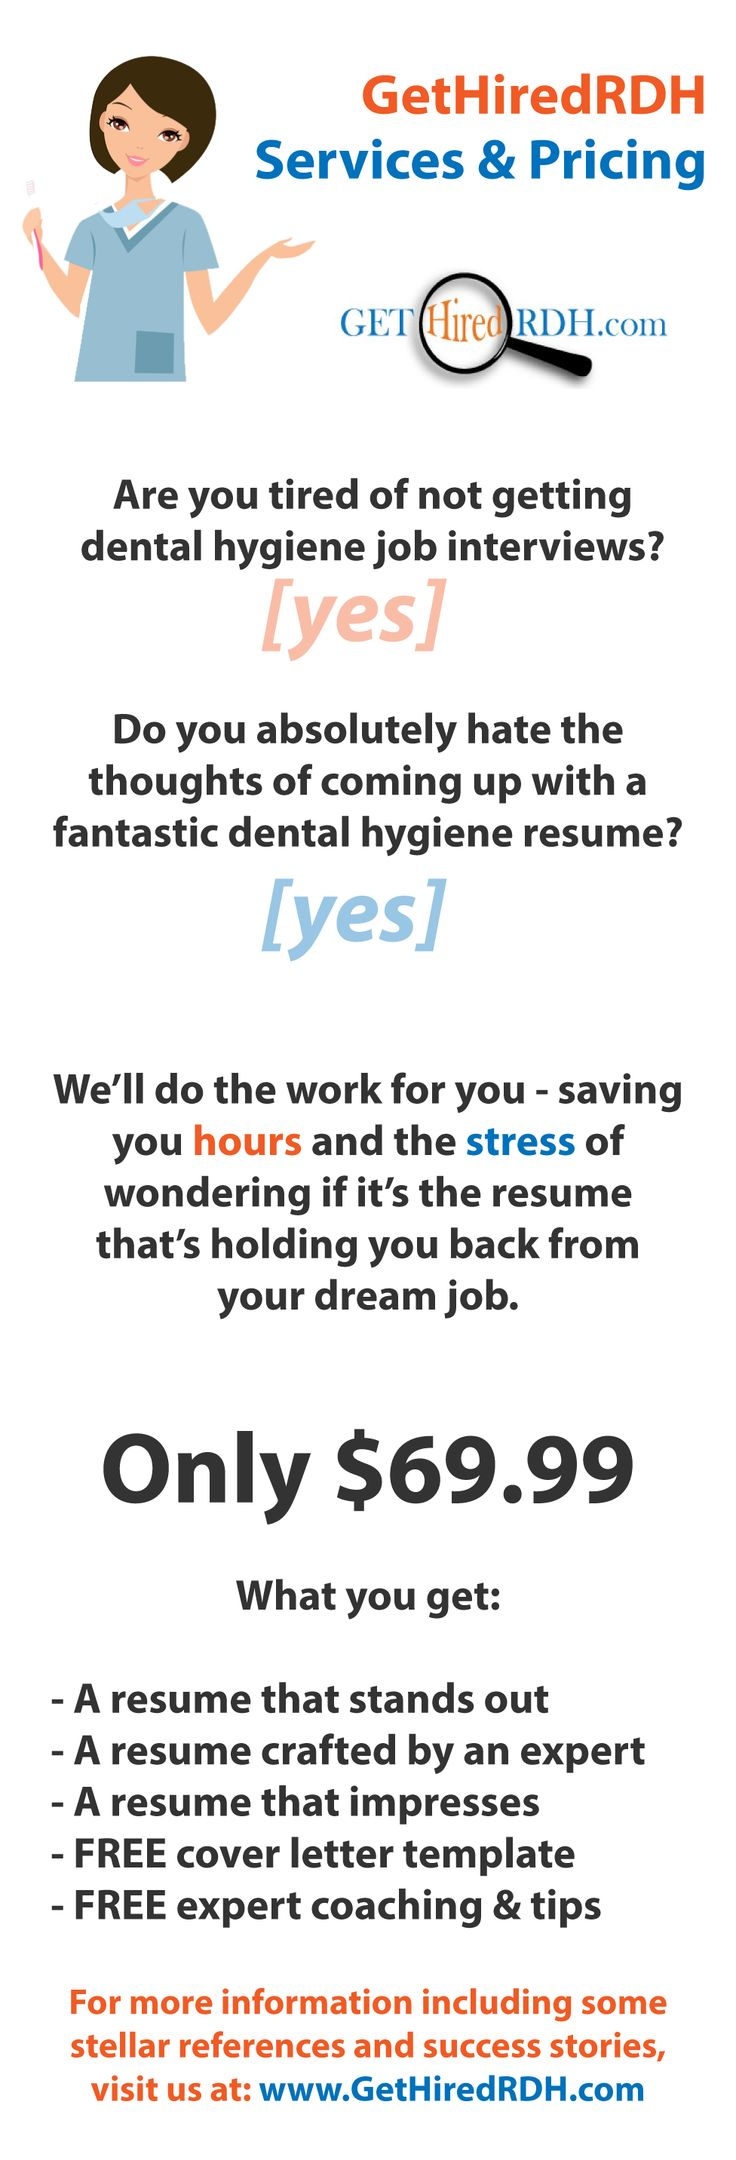 best ideas about about get hired rdh dental check us out at gethiredrdh com middot hired rdh